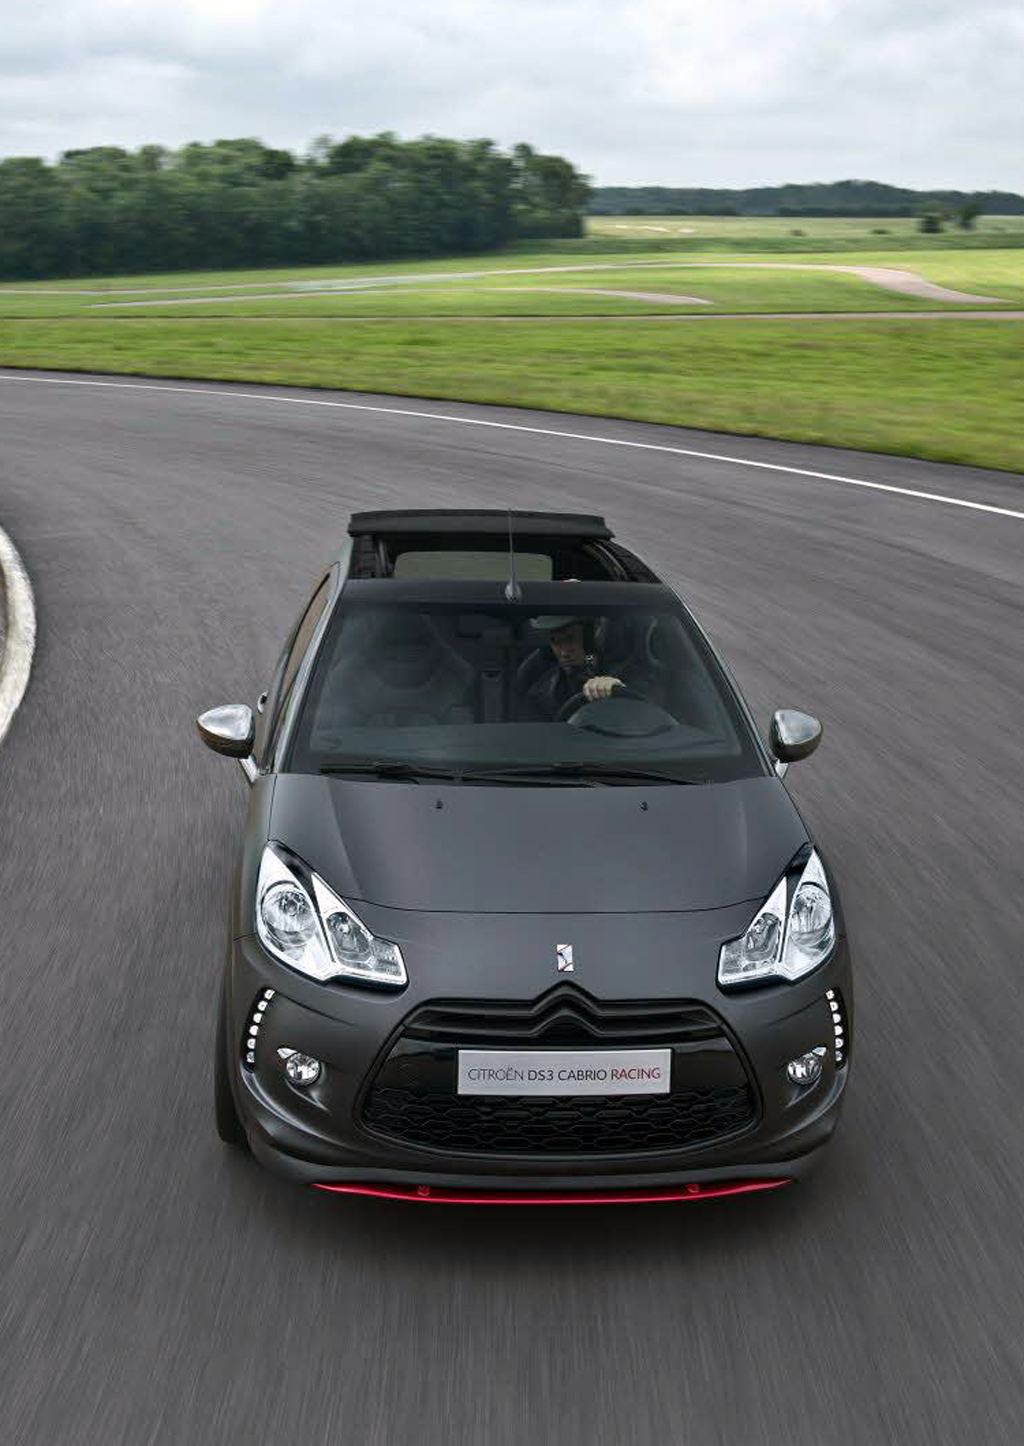 2014 citroen ds3 cabrio racing concept details. Black Bedroom Furniture Sets. Home Design Ideas